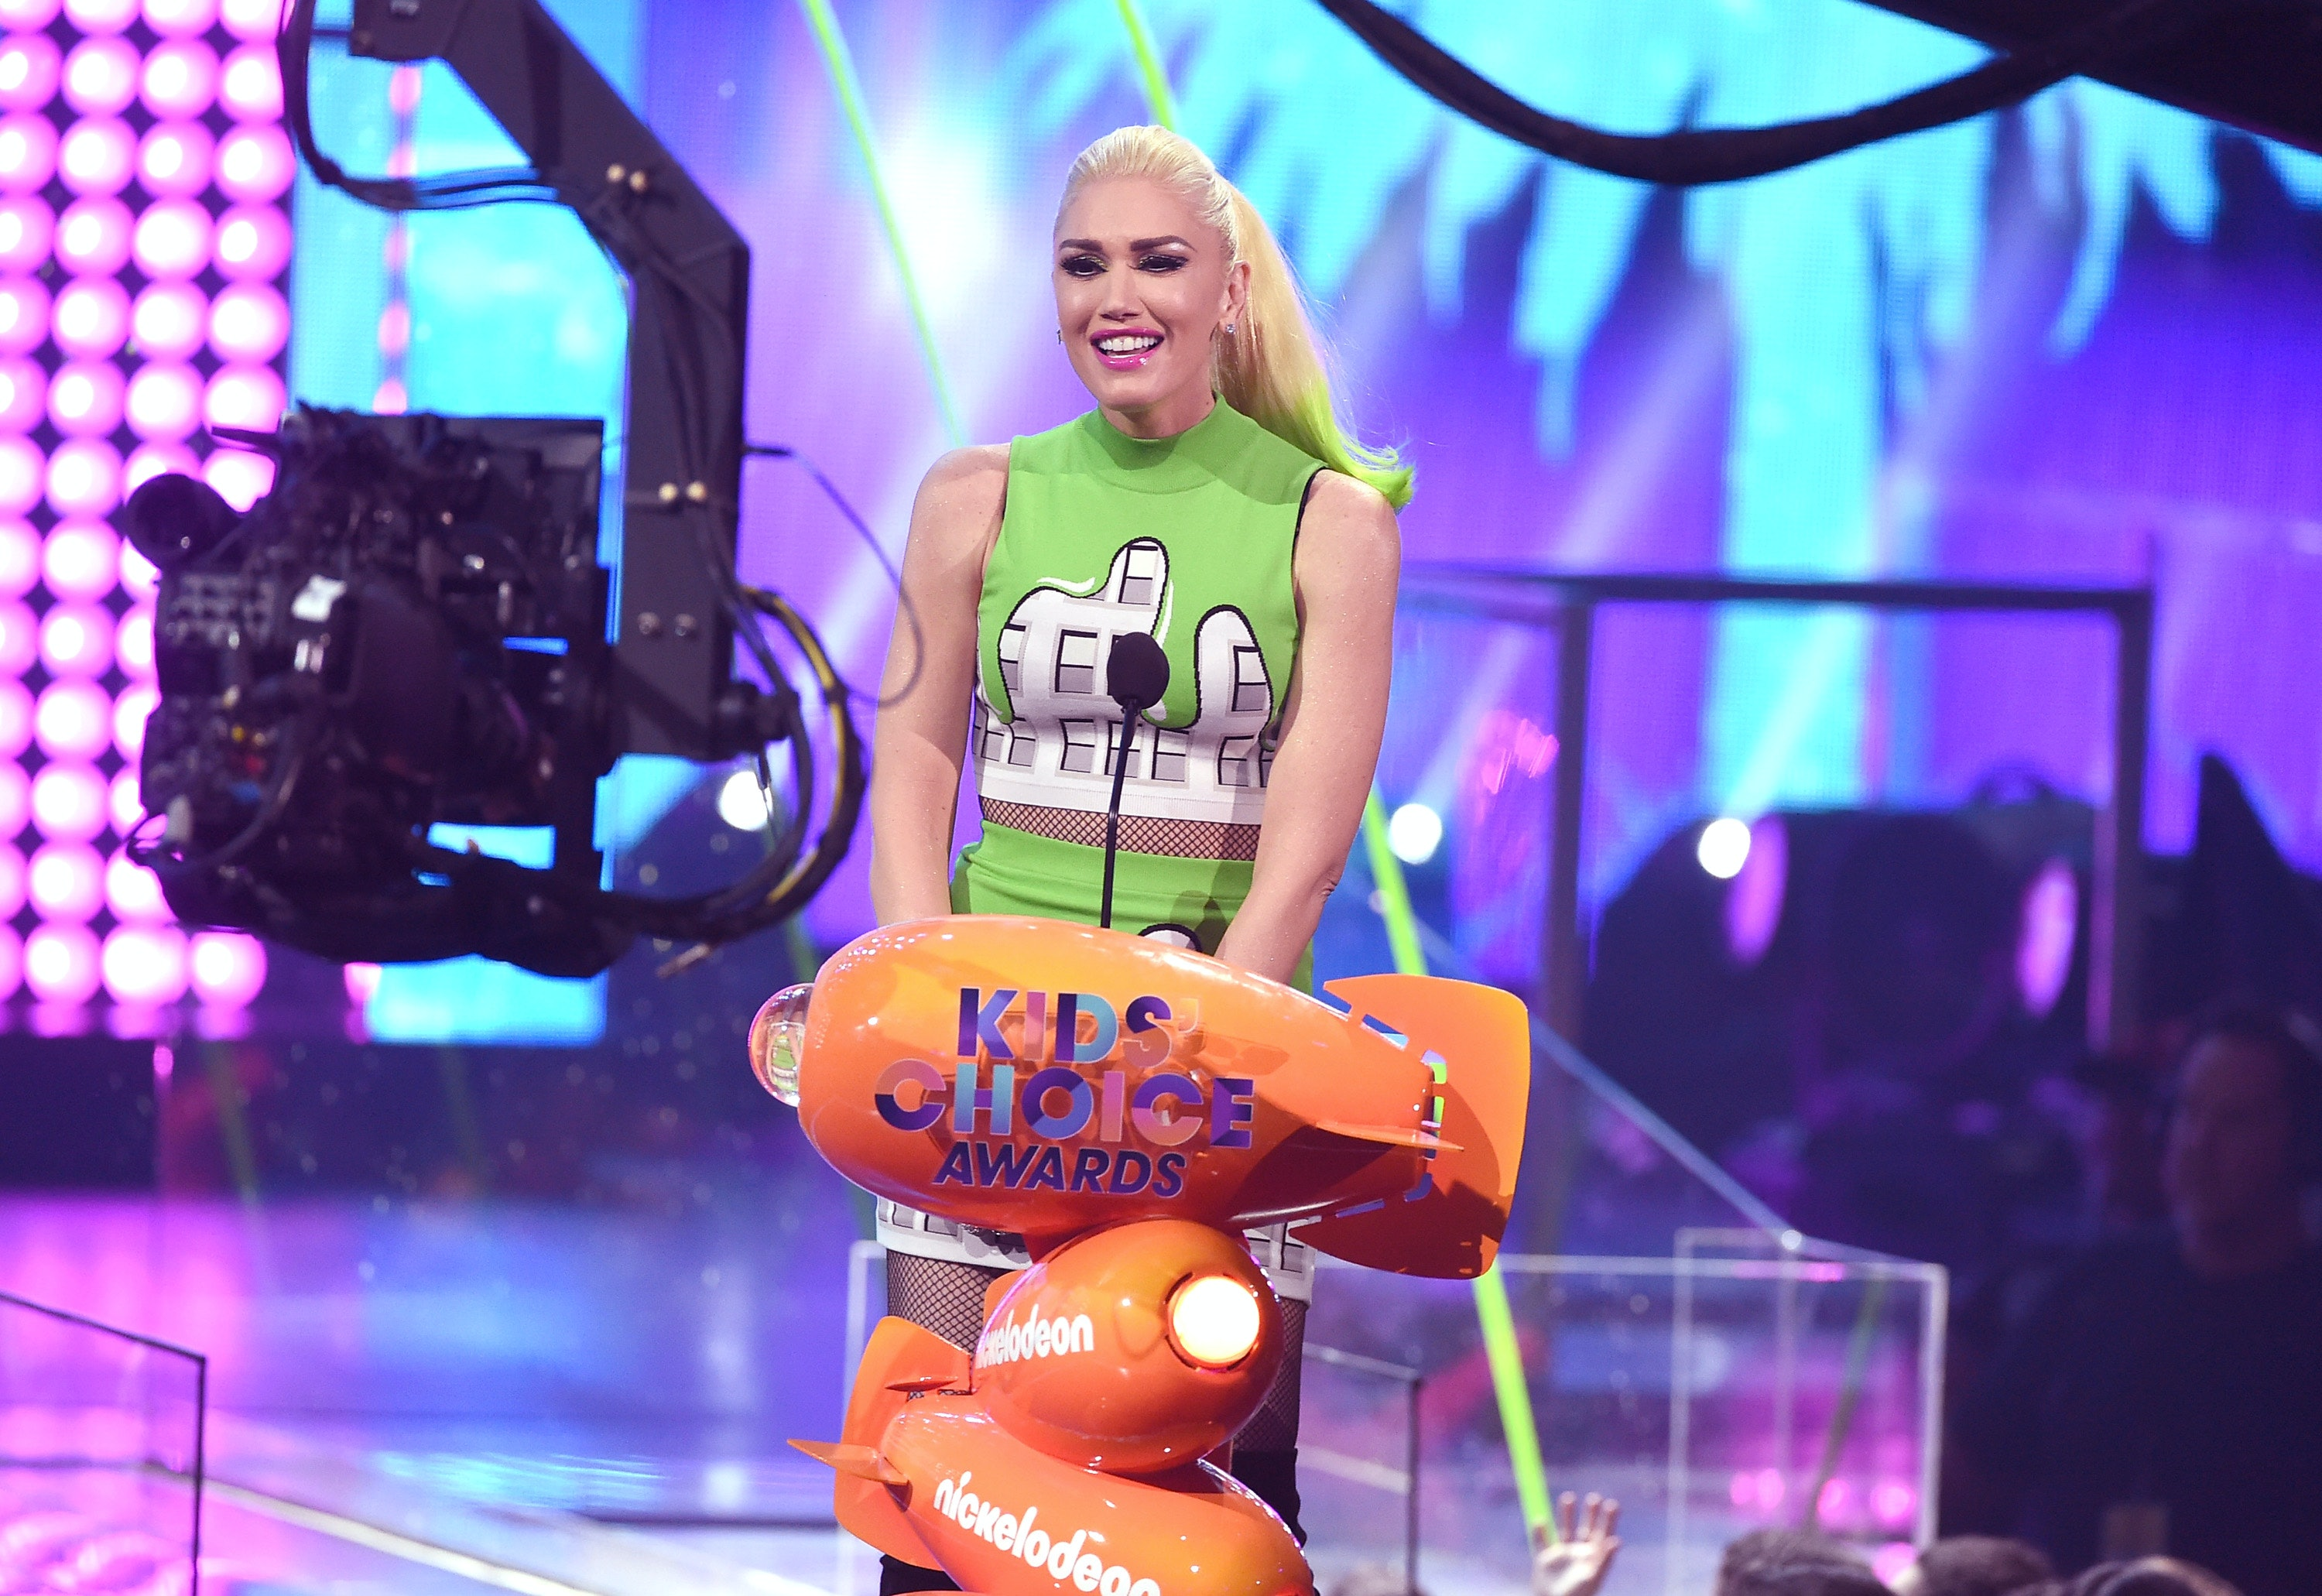 47-year-old Gwen Stefani is pregnant with her fourth child 08.09.2017